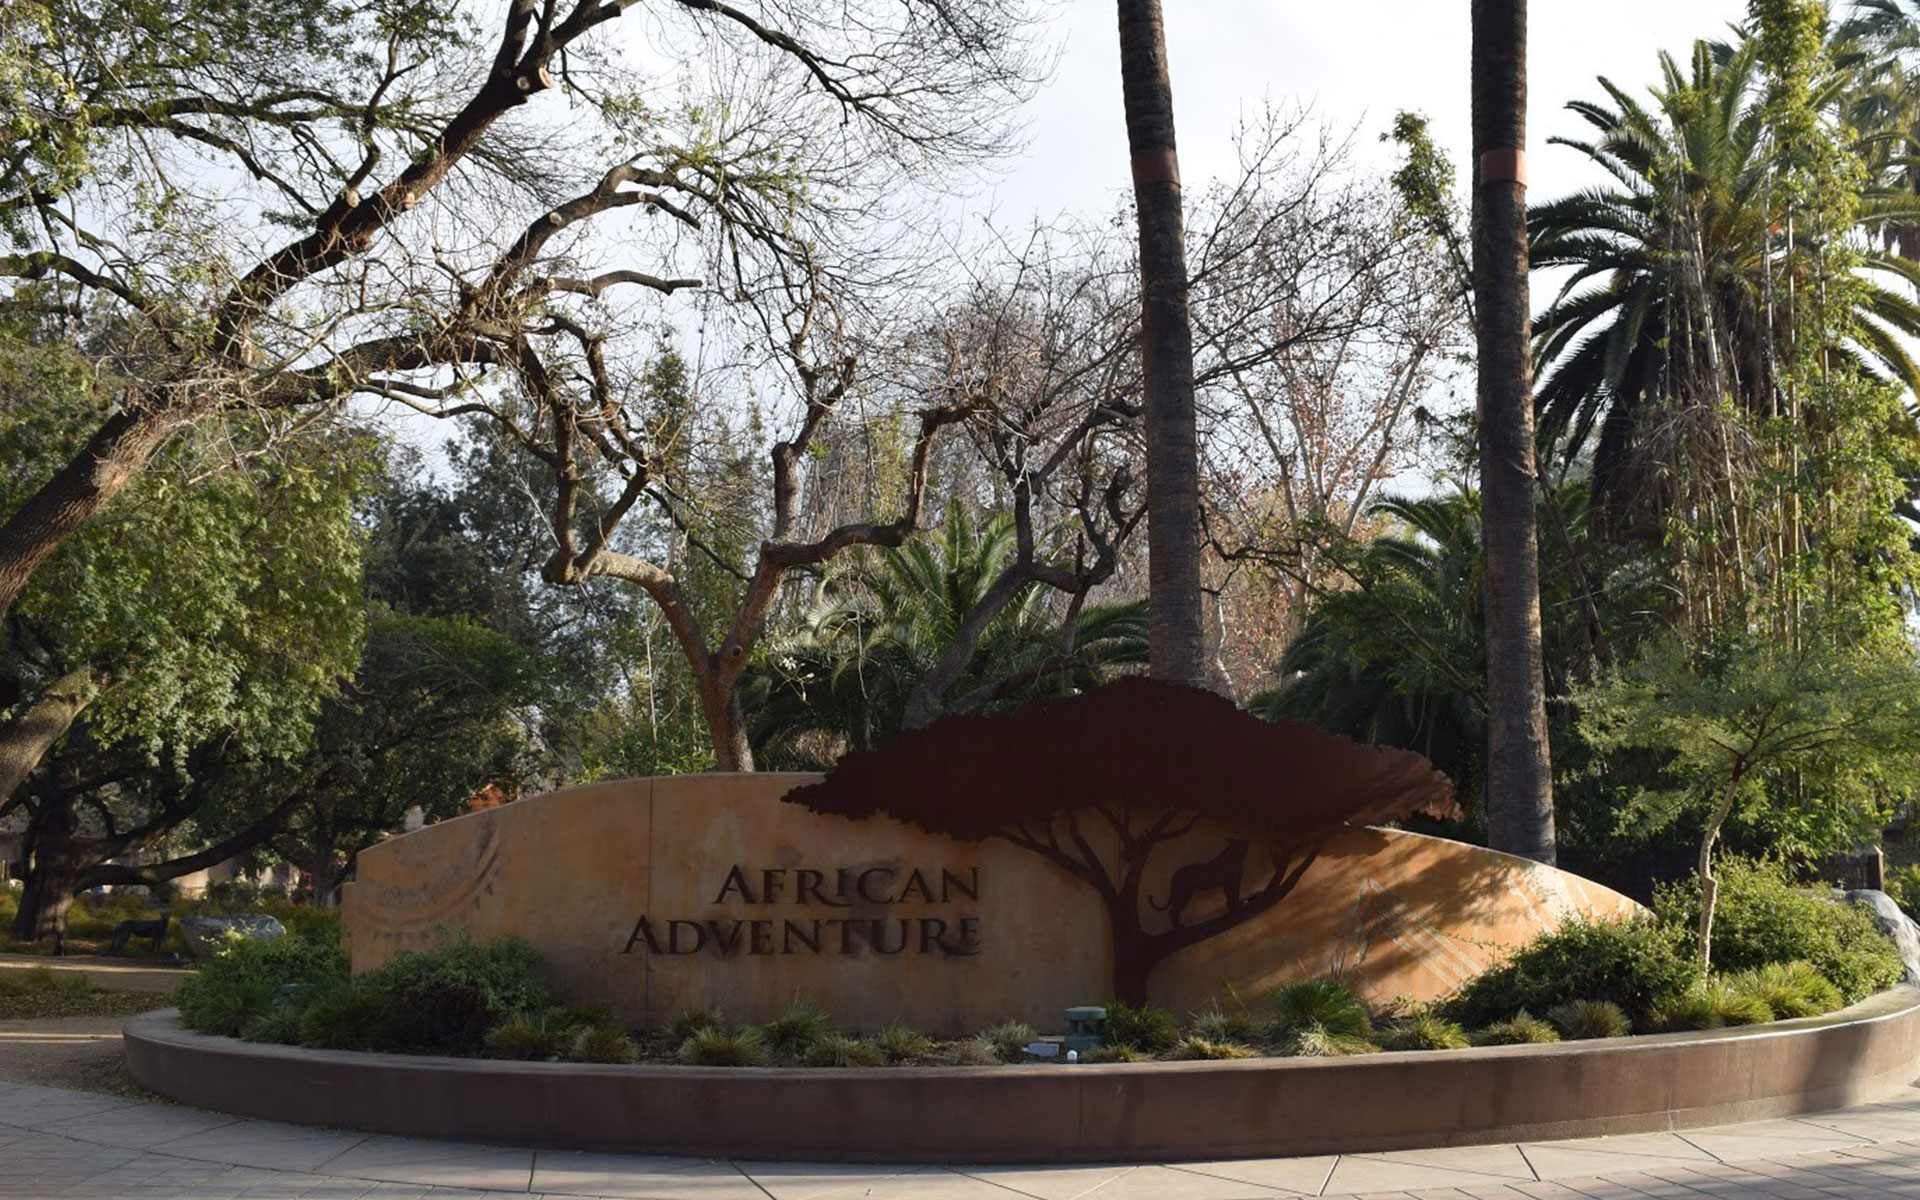 African Adventure sign and landscaping